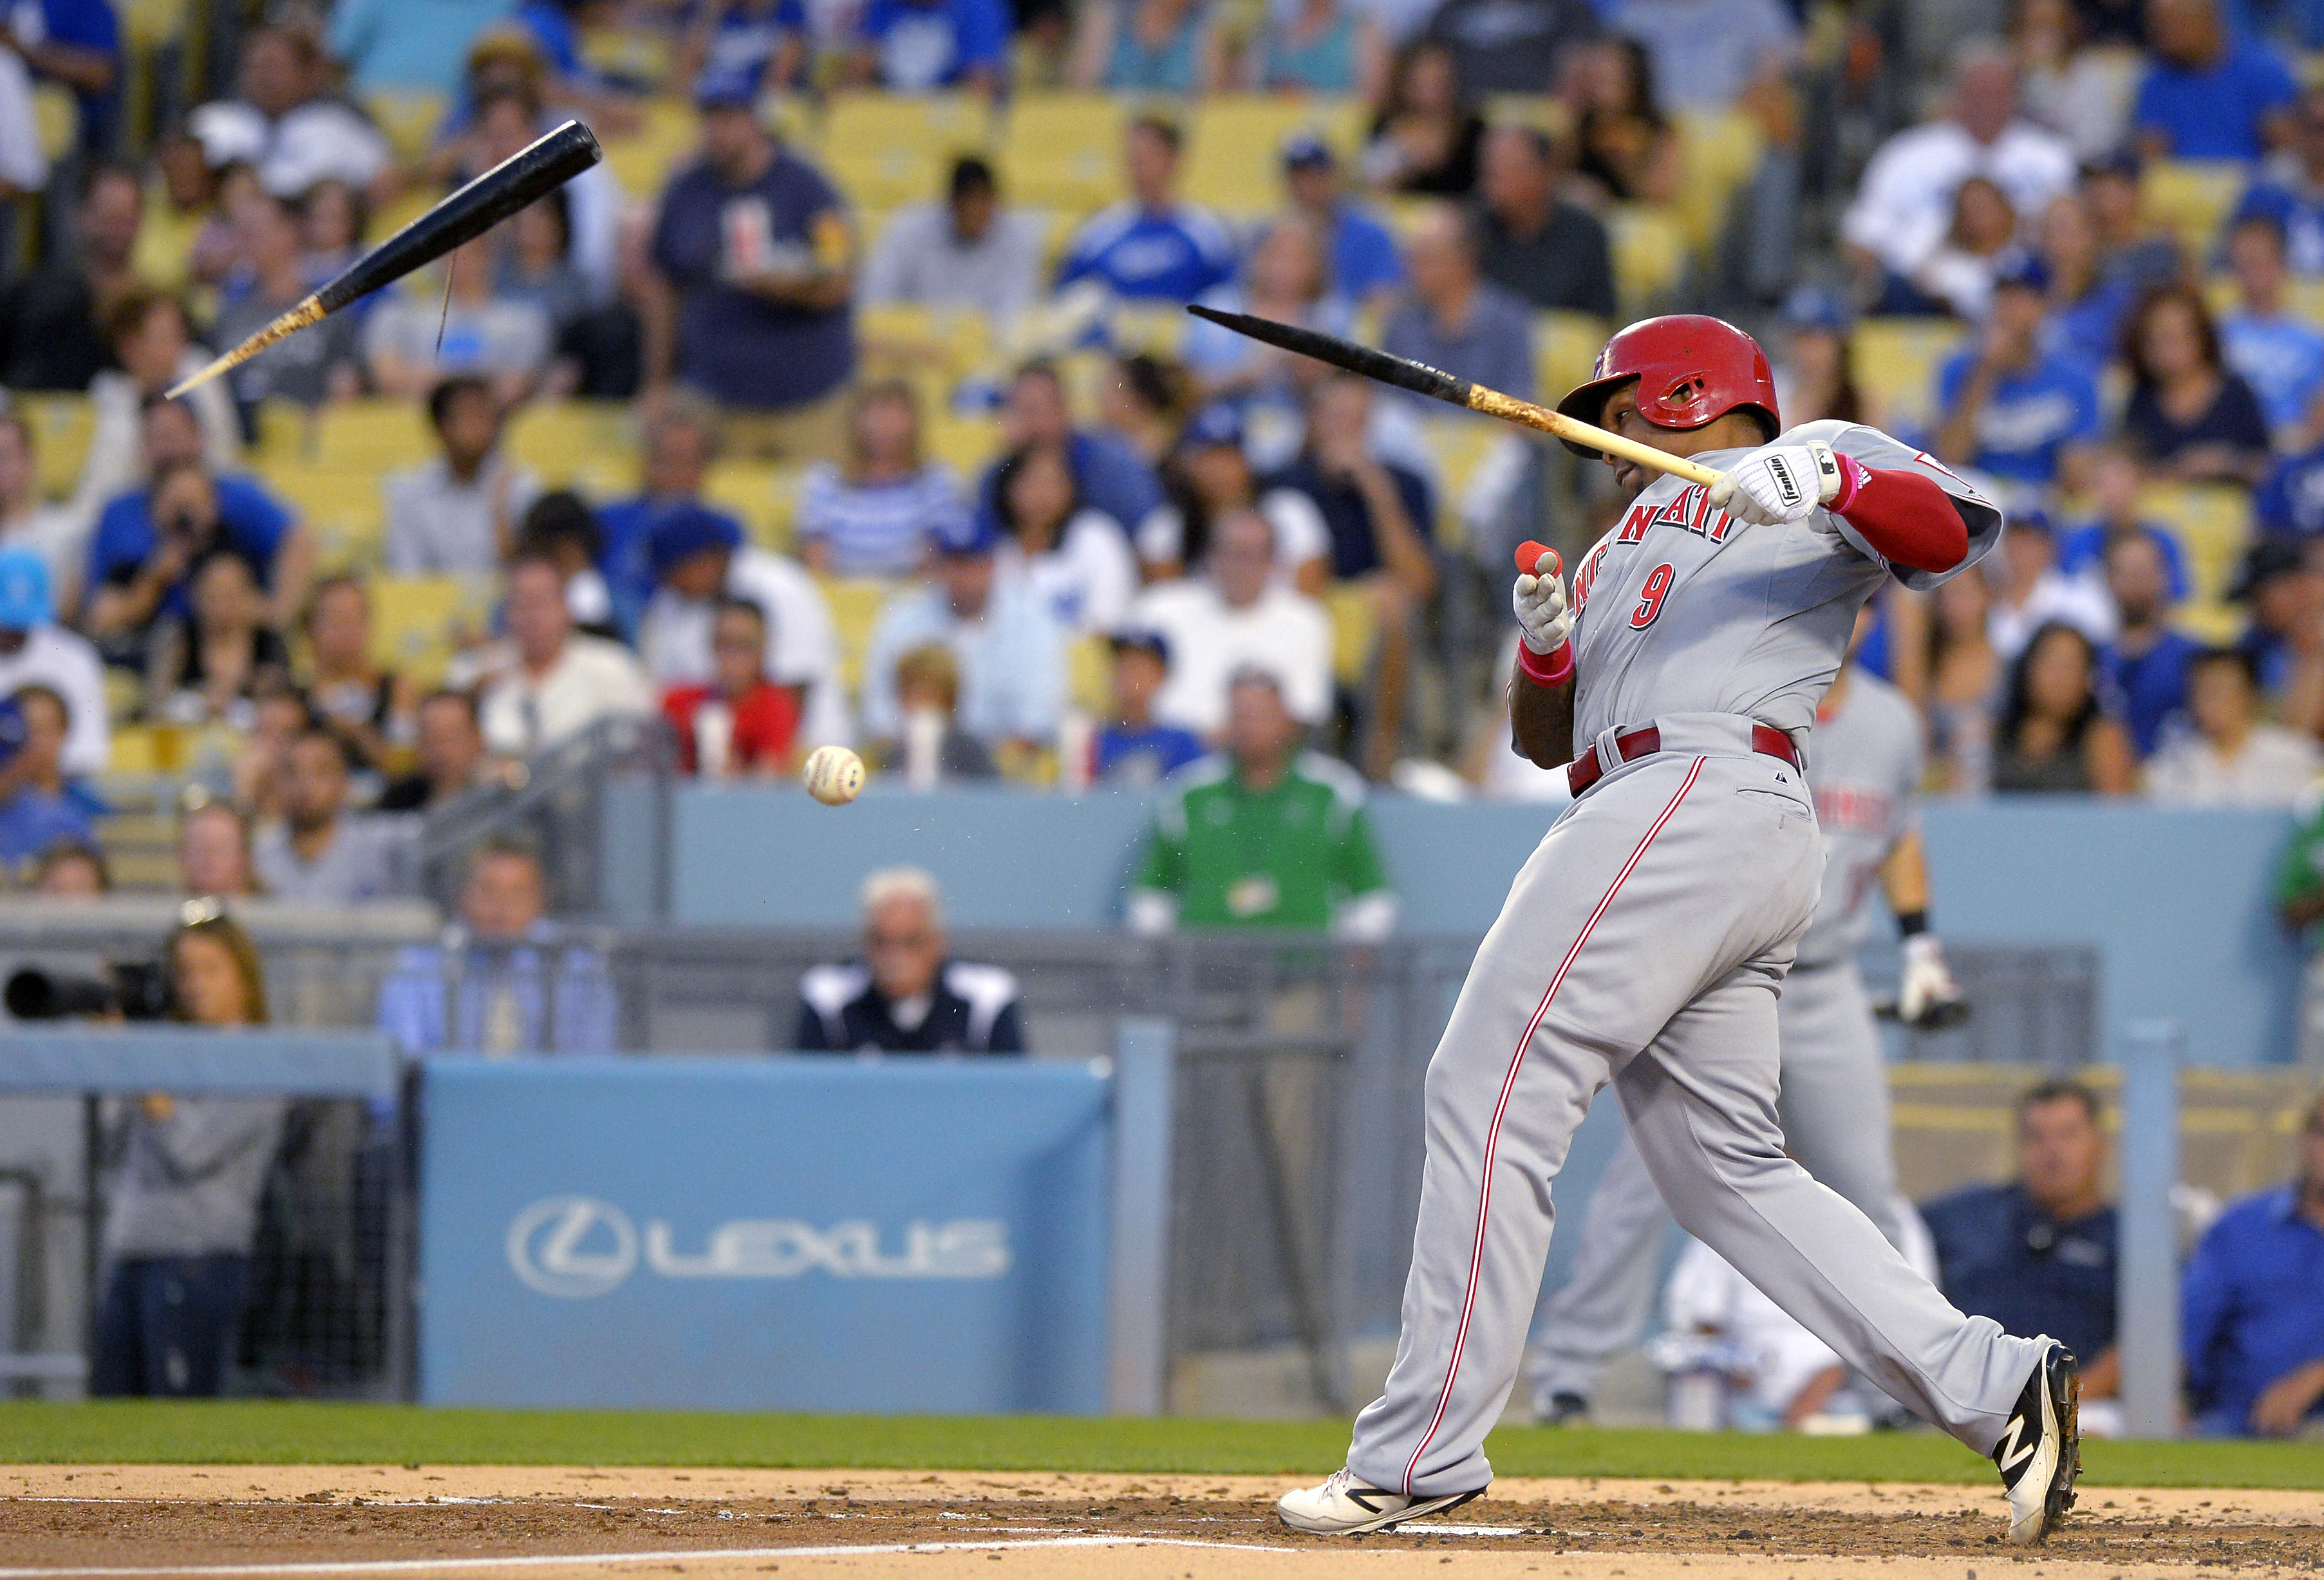 Cincinnati Reds' Marlon Byrd breaks his bat as he hits a foul ball during the second inning of a baseball game against the Los Angeles Dodgers, Thursday, Aug. 13, 2015, in Los Angeles. (AP Photo/Mark J. Terrill)